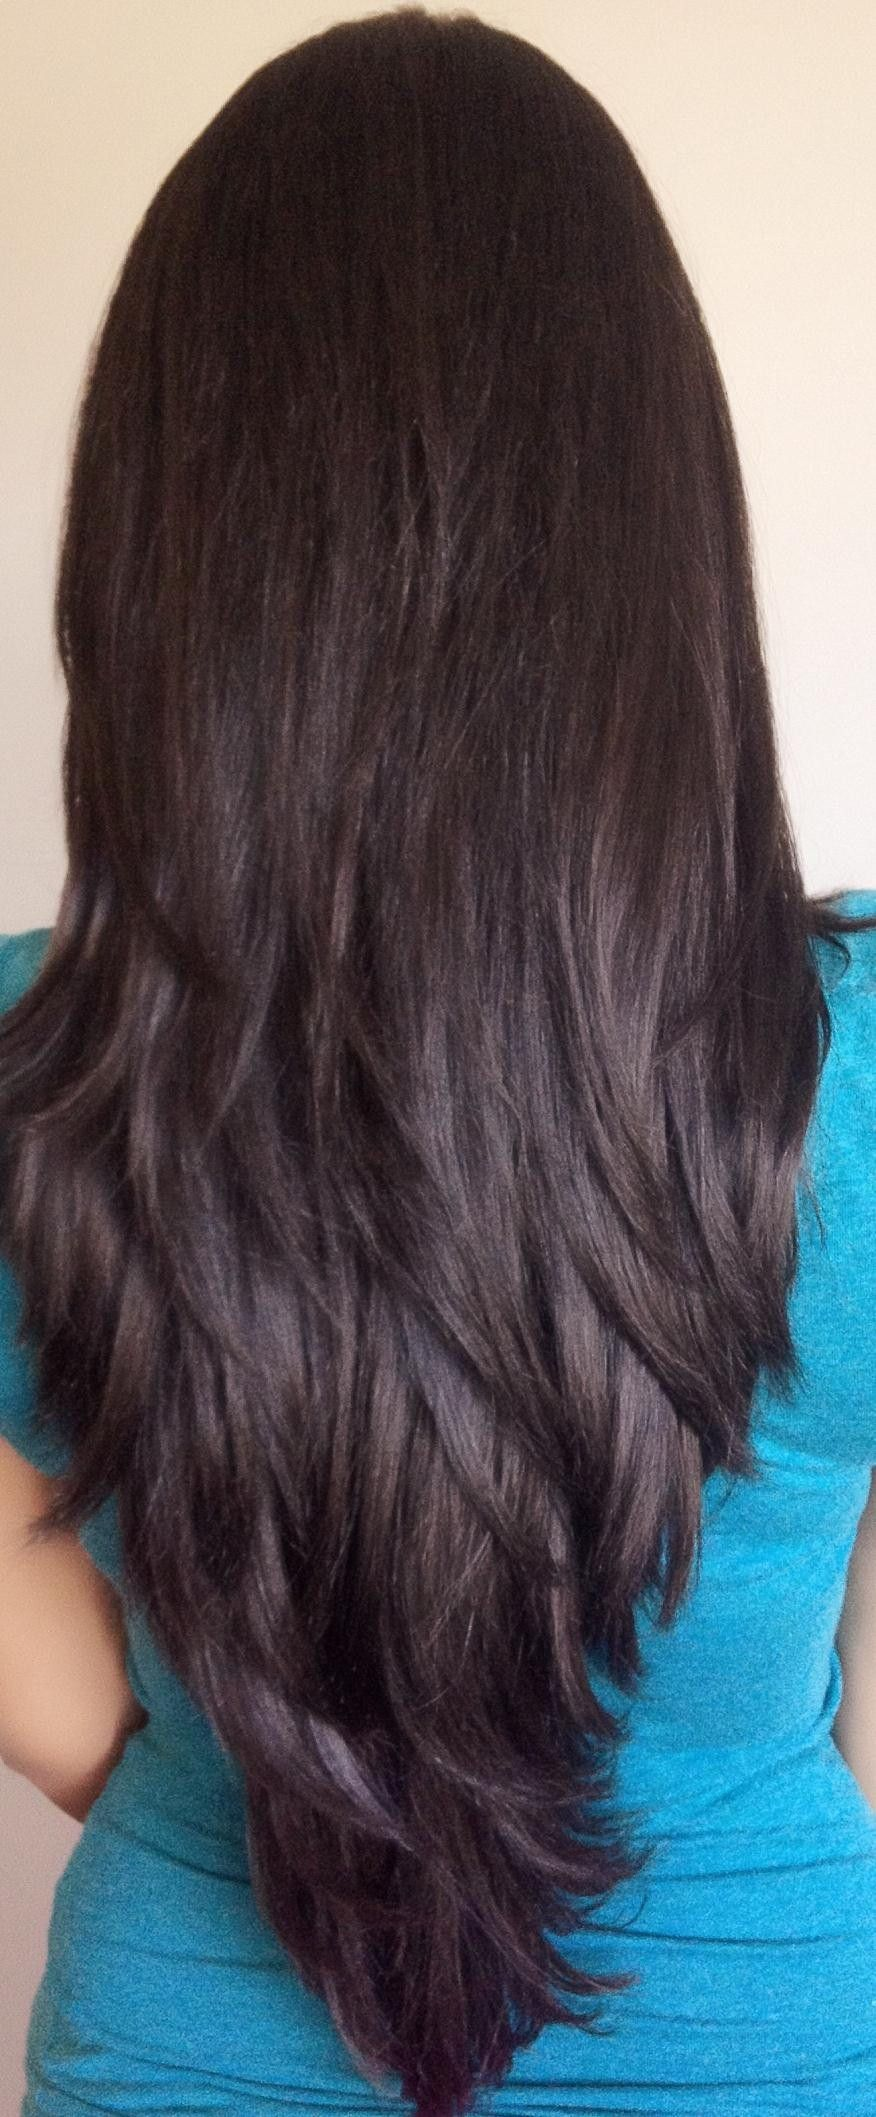 15 Long Layered Haircut Ideas To Try 15 Long Layered Haircut Ideas To Try new images